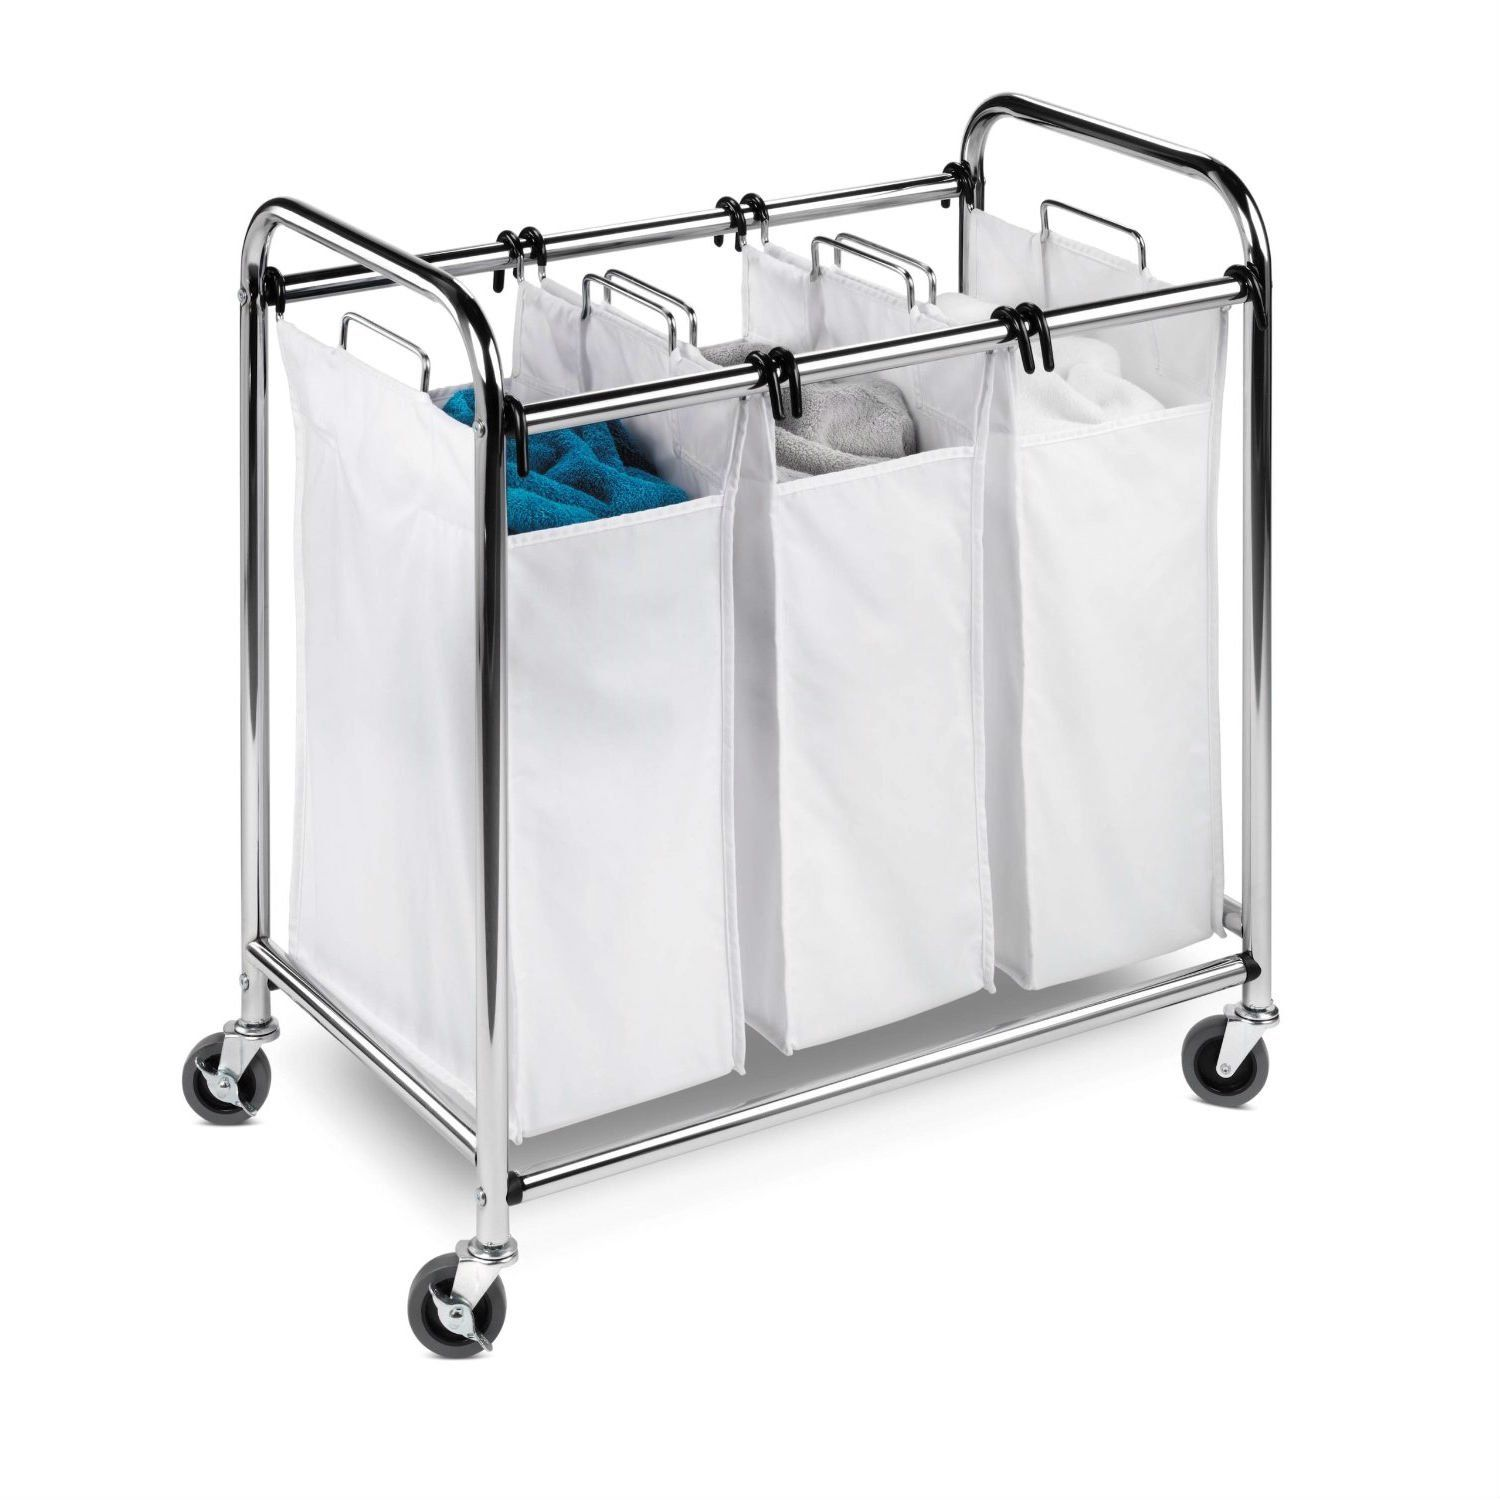 Heavy Duty Commercial Grade Laundry Sorter Hamper Cart In White Chrome With Images Laundry Sorter Laundry Hamper Laundry Sorter Hamper